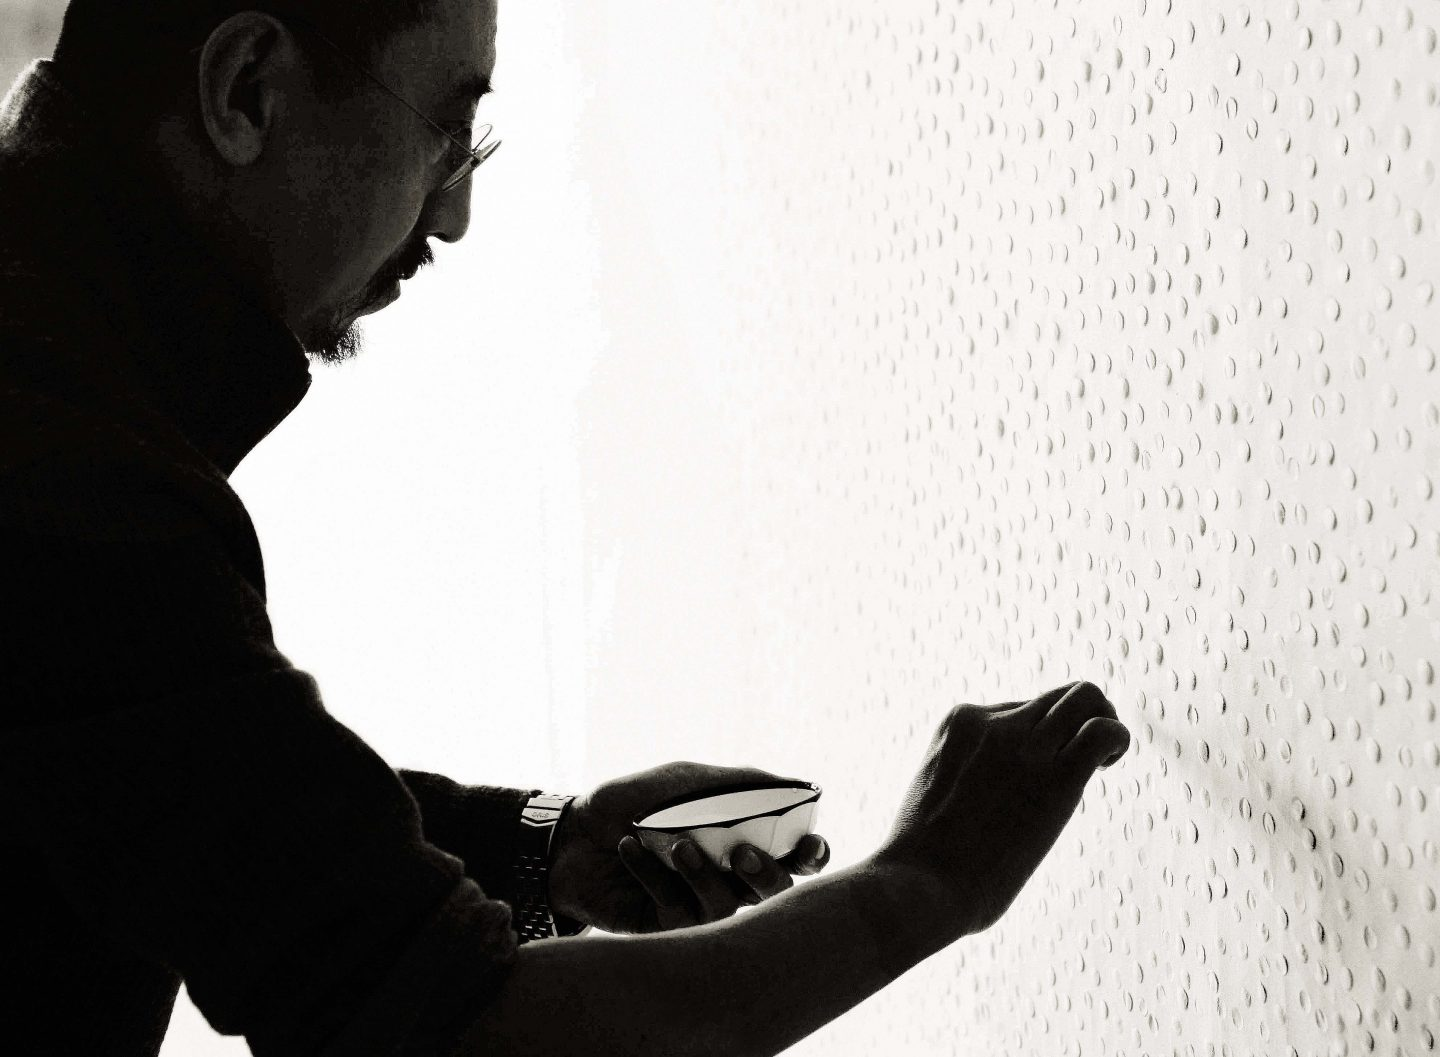 Zhang Yu making a Fingerprints work in Beijing, 2007. Photo courtesy of the artist.